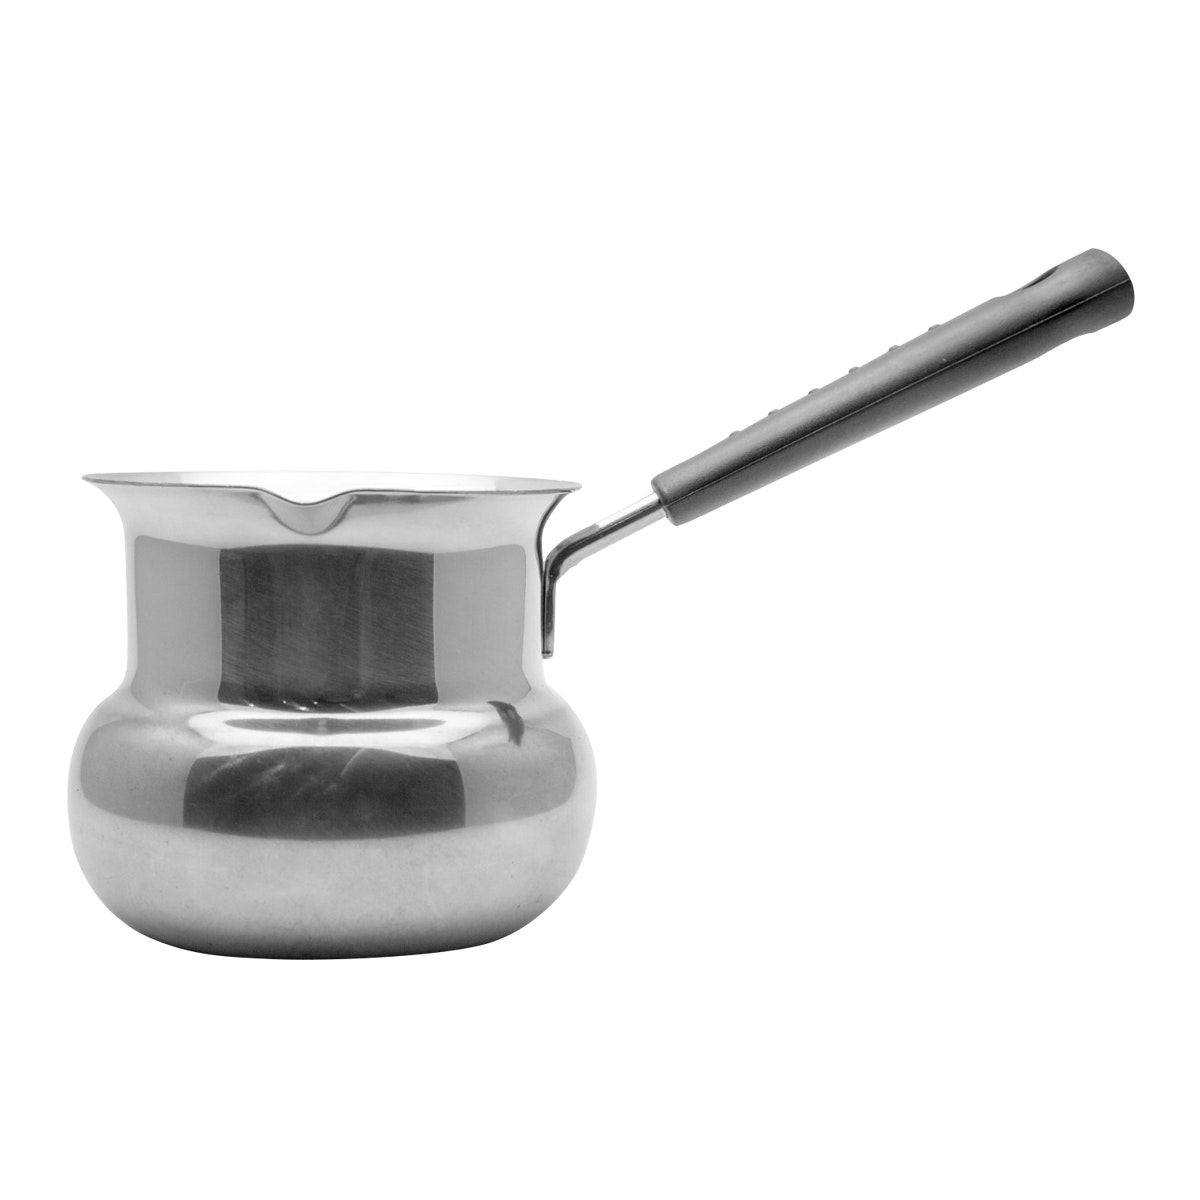 HAN Ibric/Ibrik/Turkish Coffee Maker/Panci Mini Stainless Handle Bakelite Tebal Model Drum IBRD 1080 Ml